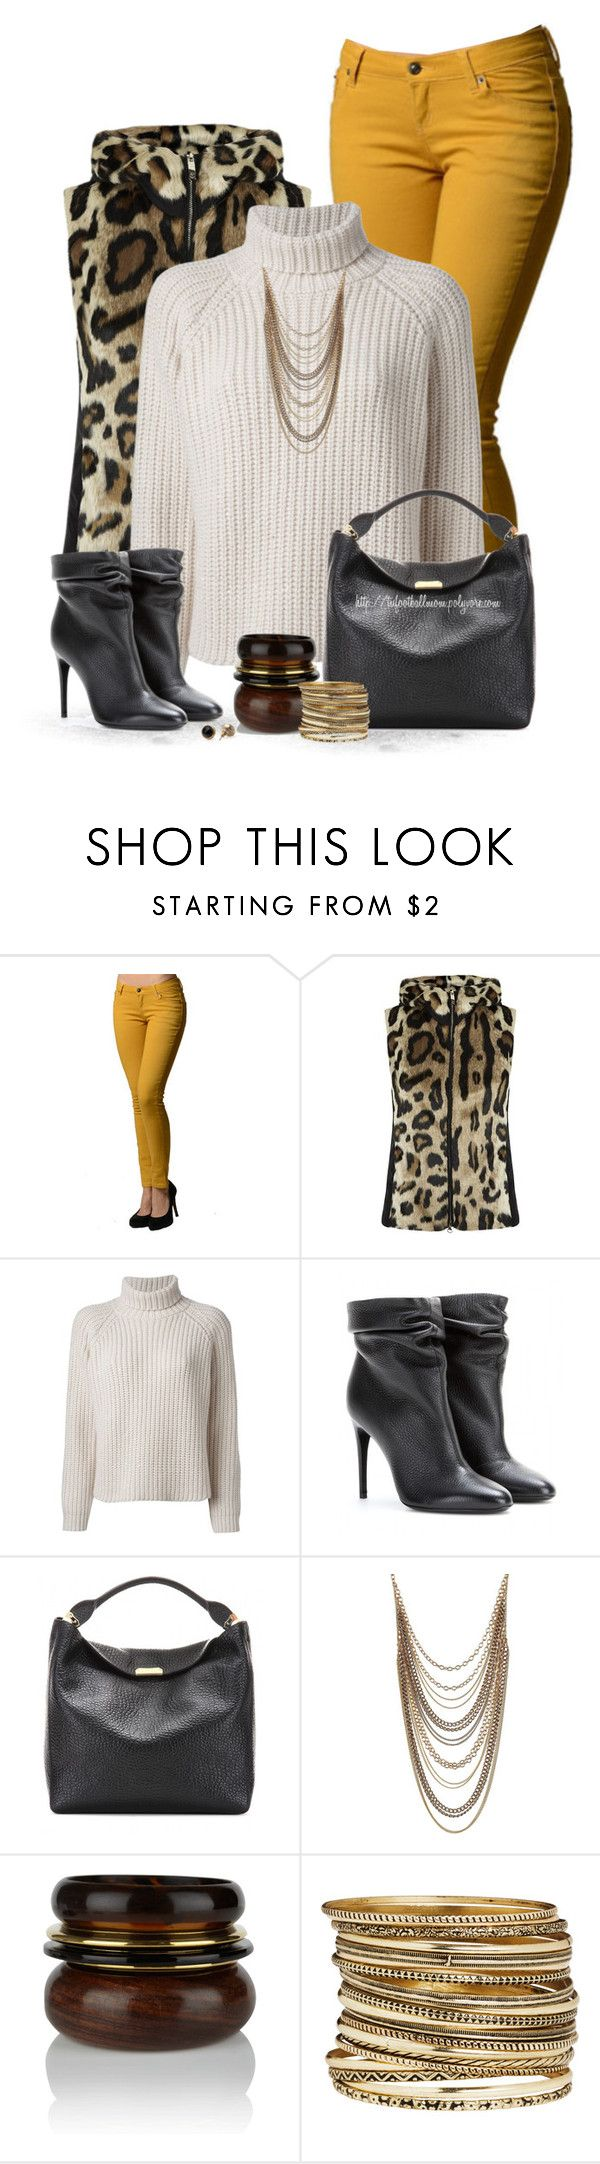 """Black leather ankle boots"" by tufootballmom ❤ liked on Polyvore featuring Armani Jeans, Brunello Cucinelli, Burberry, Dorothy Perkins, Oasis, H&M and American Apparel"